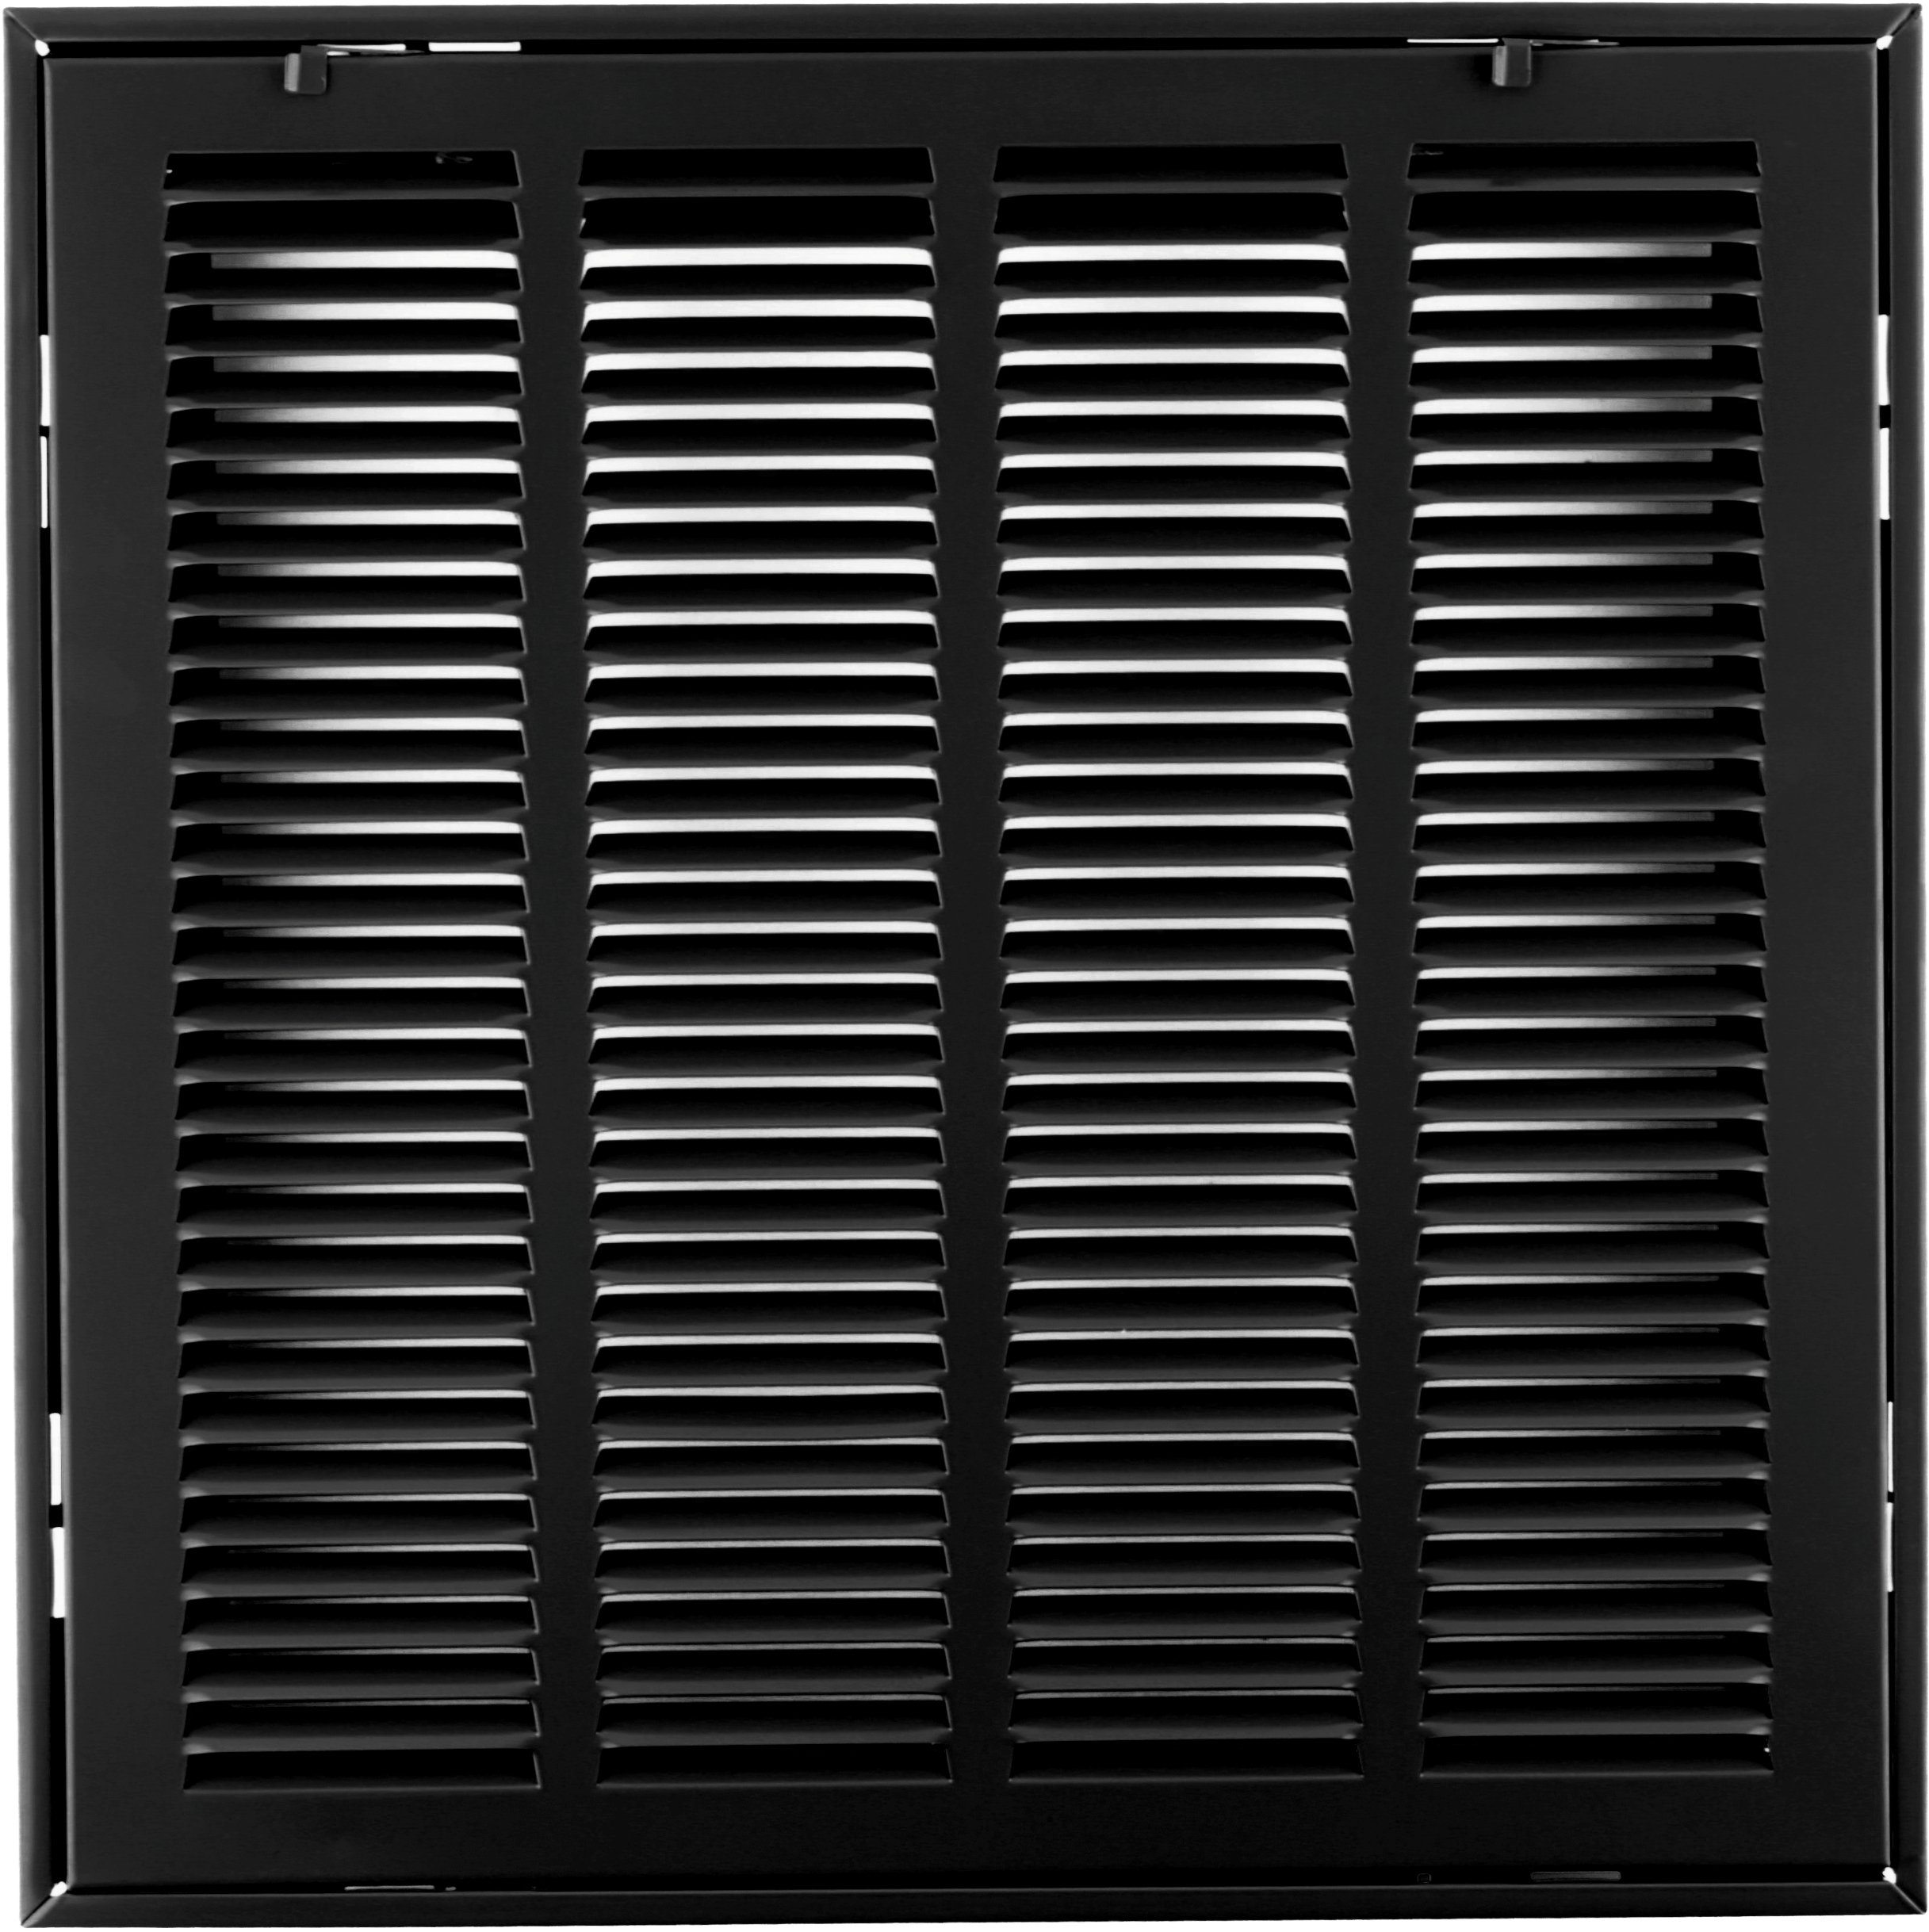 16'' X 16 Steel Return Air Filter Grille for 1'' Filter - Removable Face/Door - HVAC DUCT COVER - Flat Stamped Face - Black [Outer Dimensions: 18.5''w X 18.5''h]